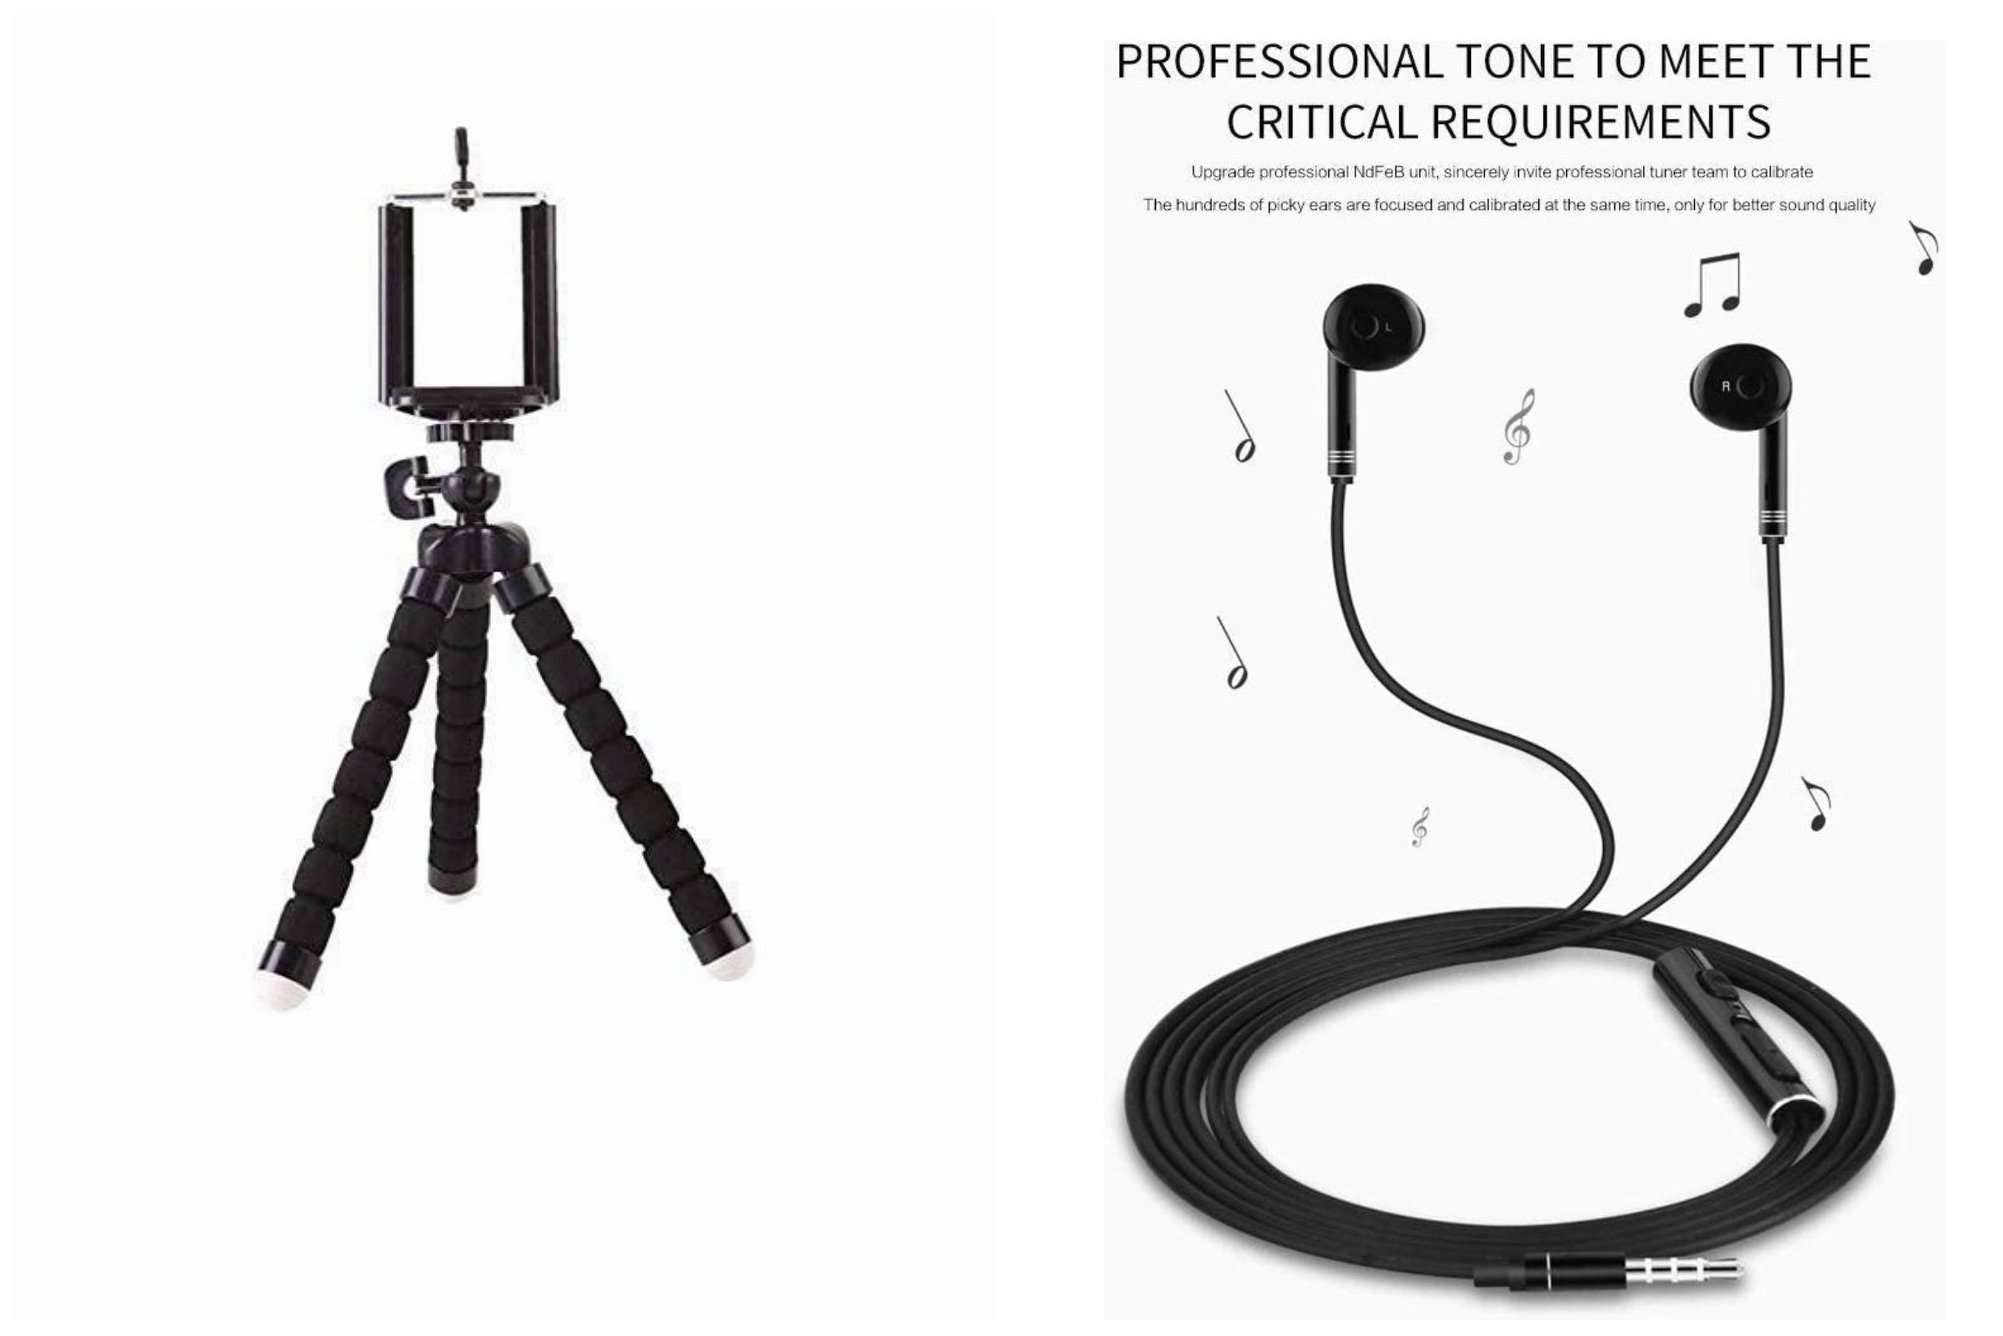 Earphone and tripod combo